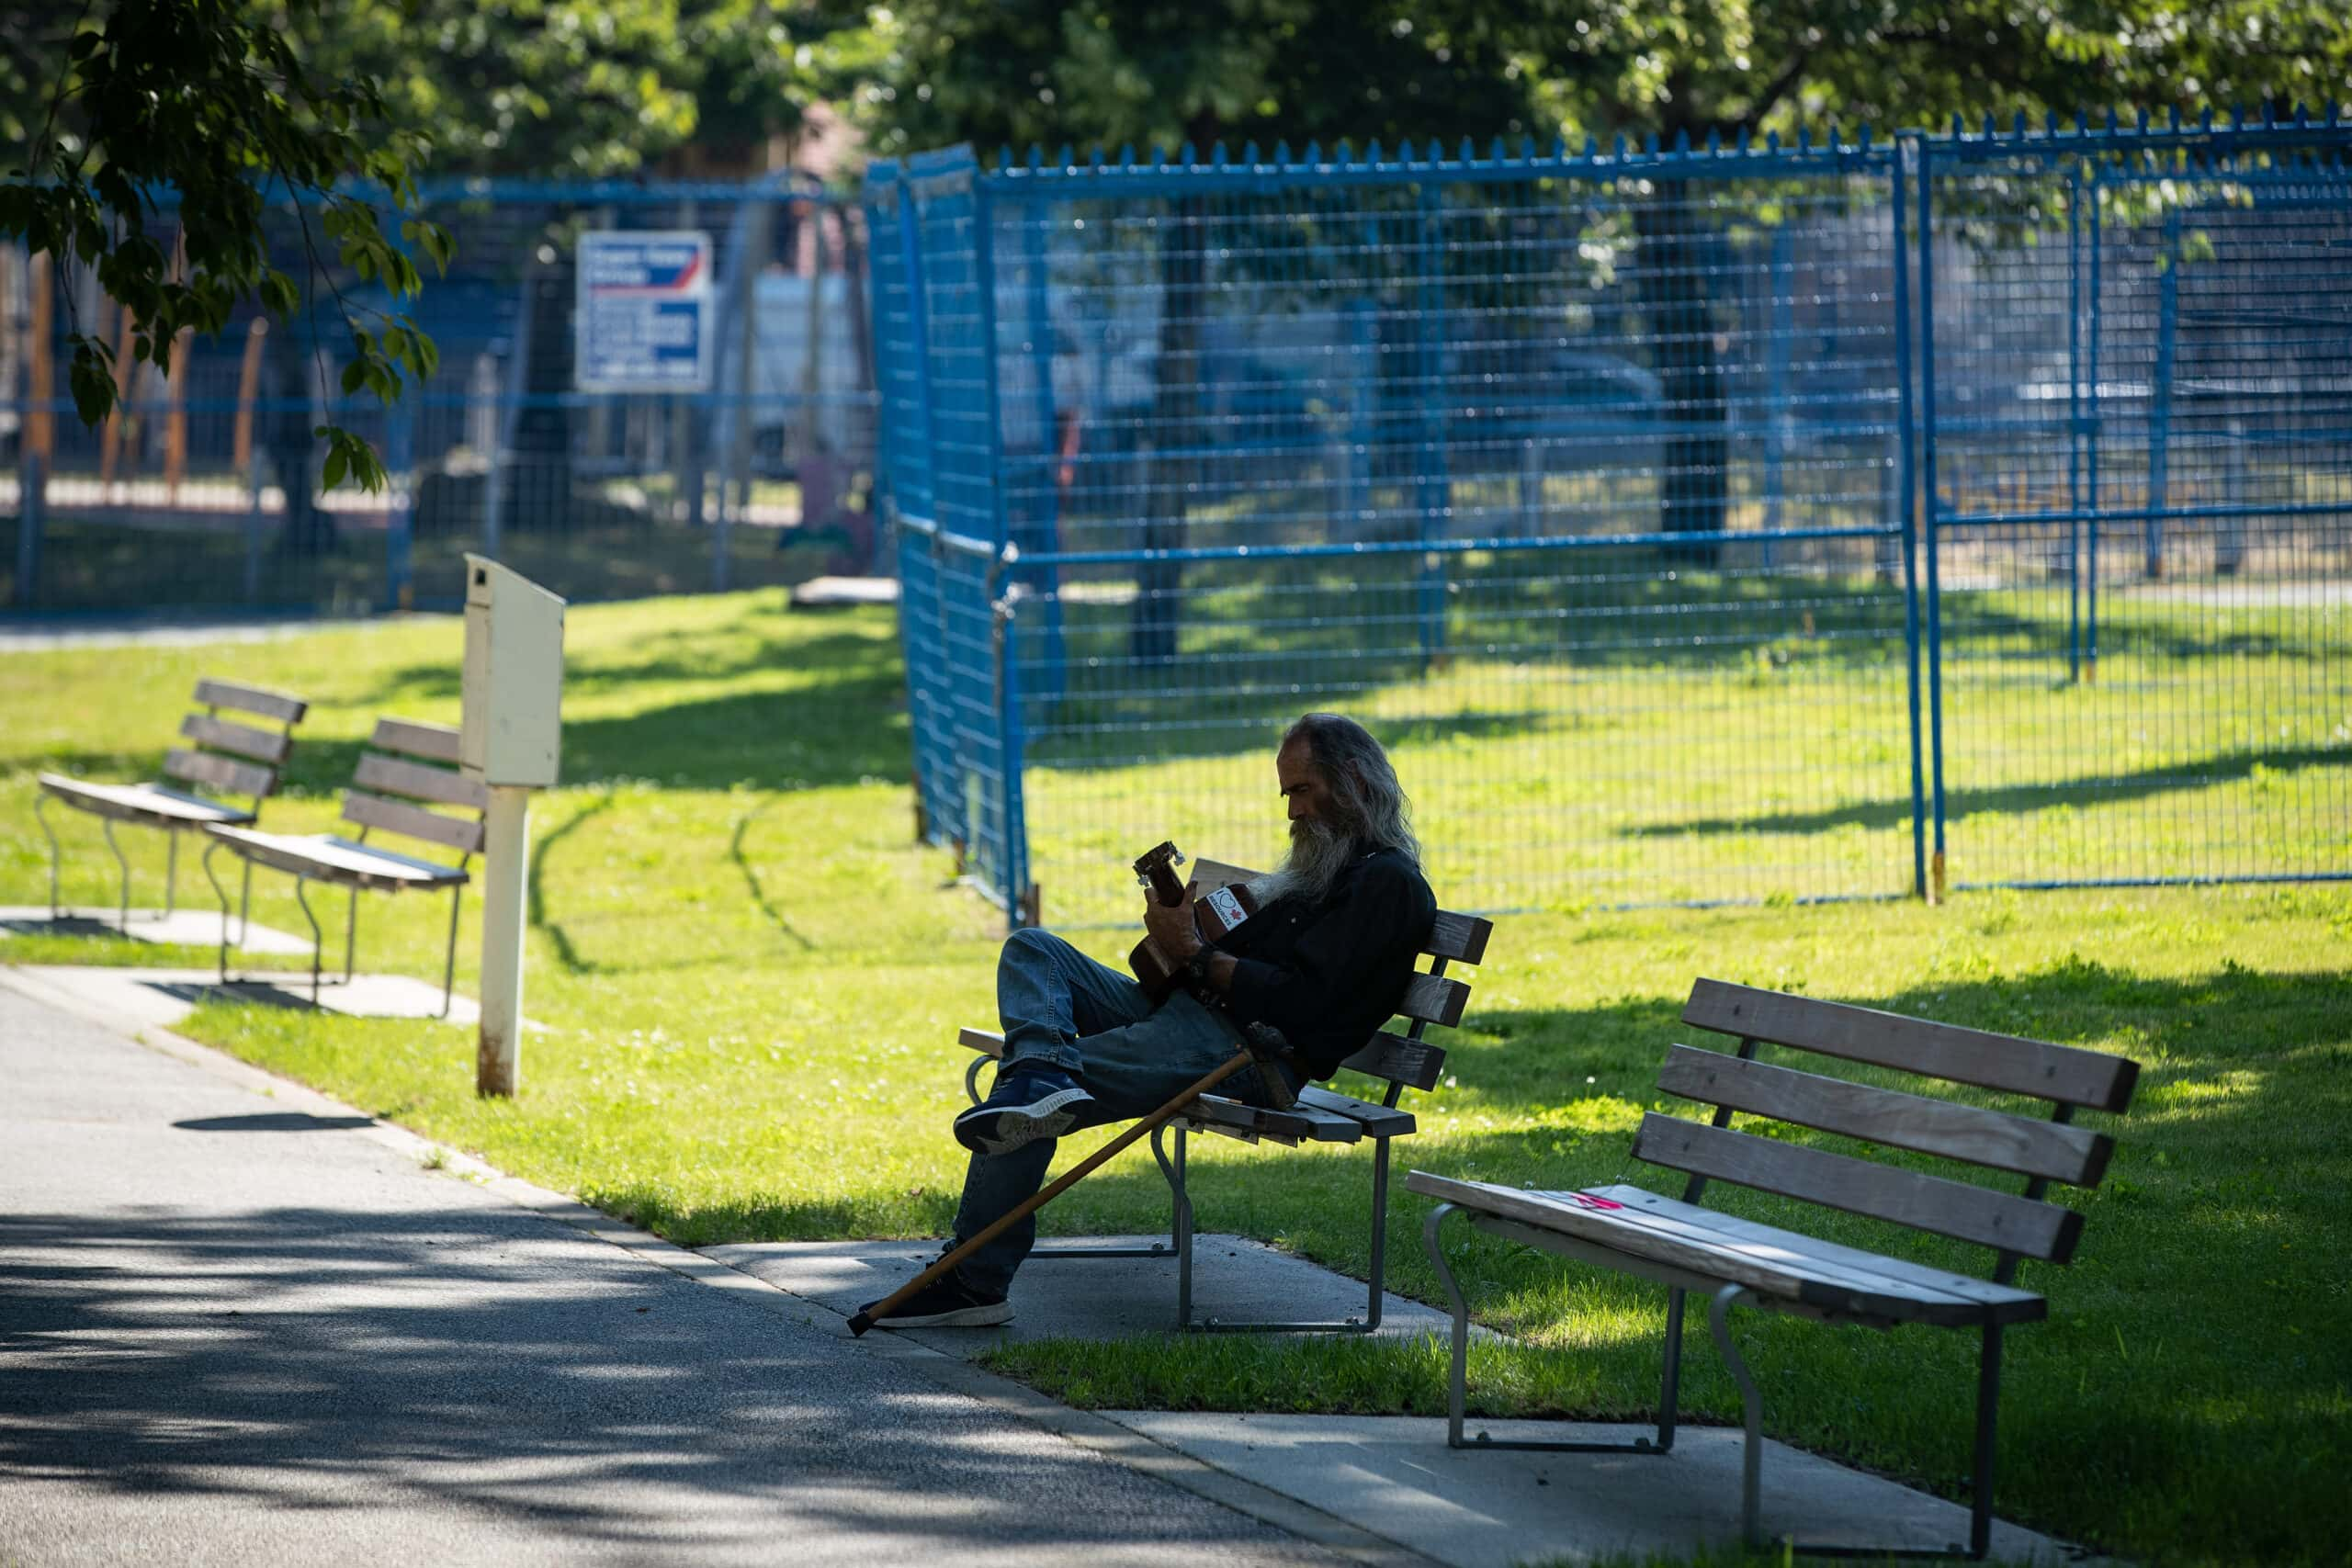 a man sitting on a bench plays guitar